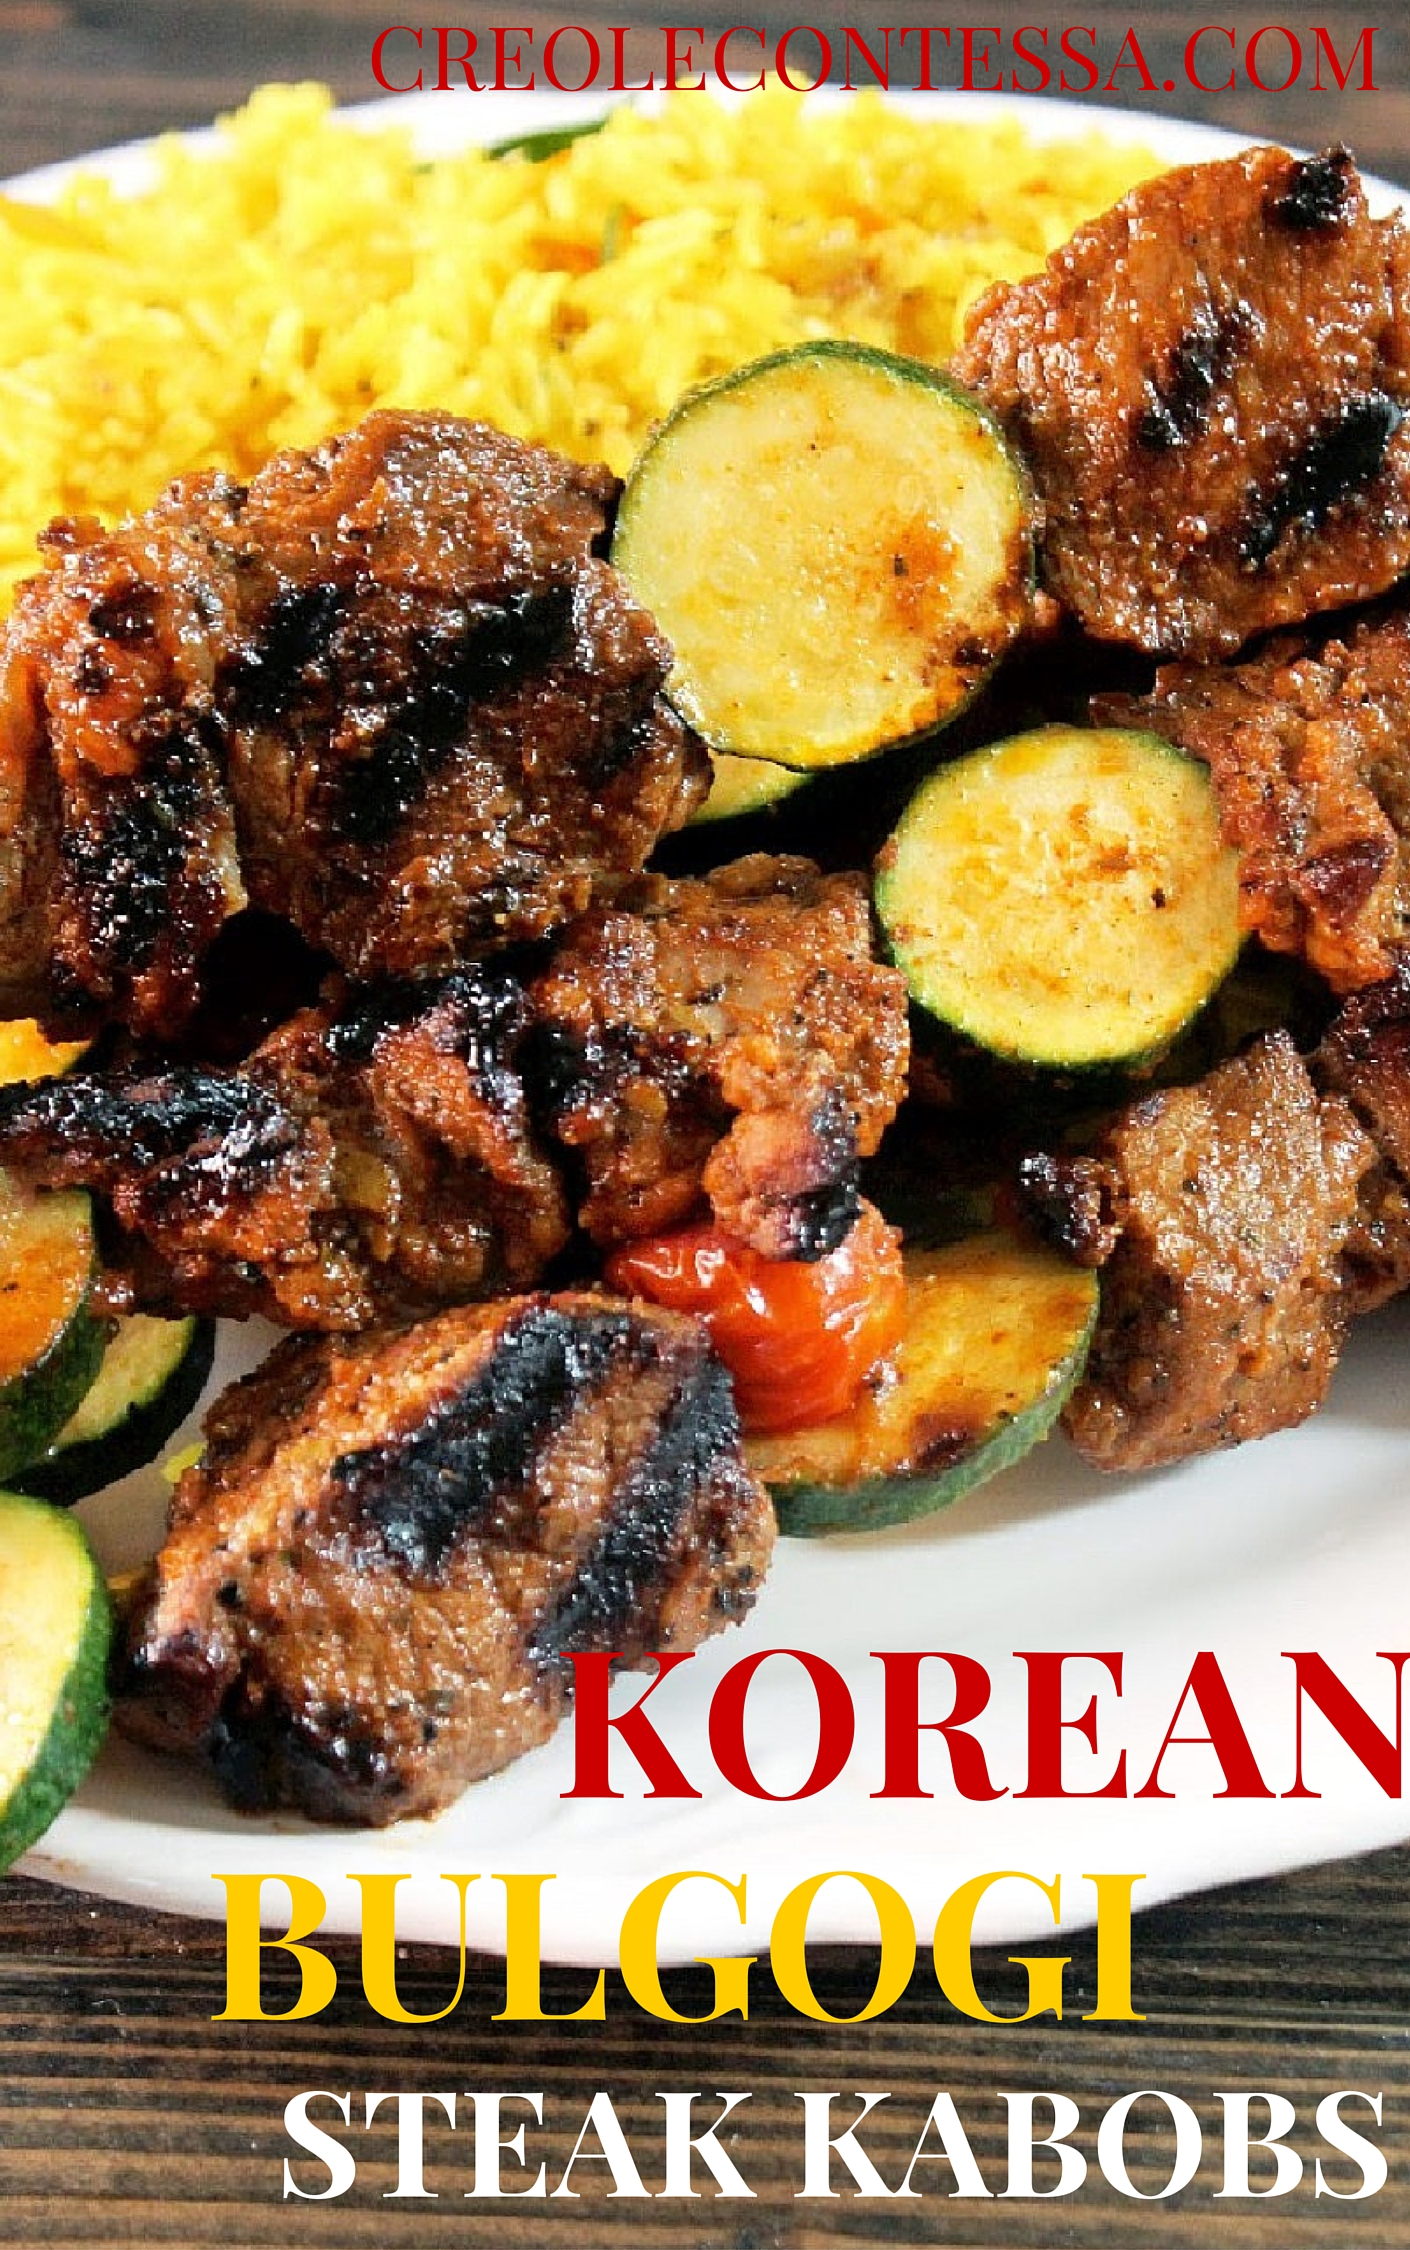 Korean Bulgogi Grilled Steak Kabobs with Yellow Rice Pilaf-Creole Contessa